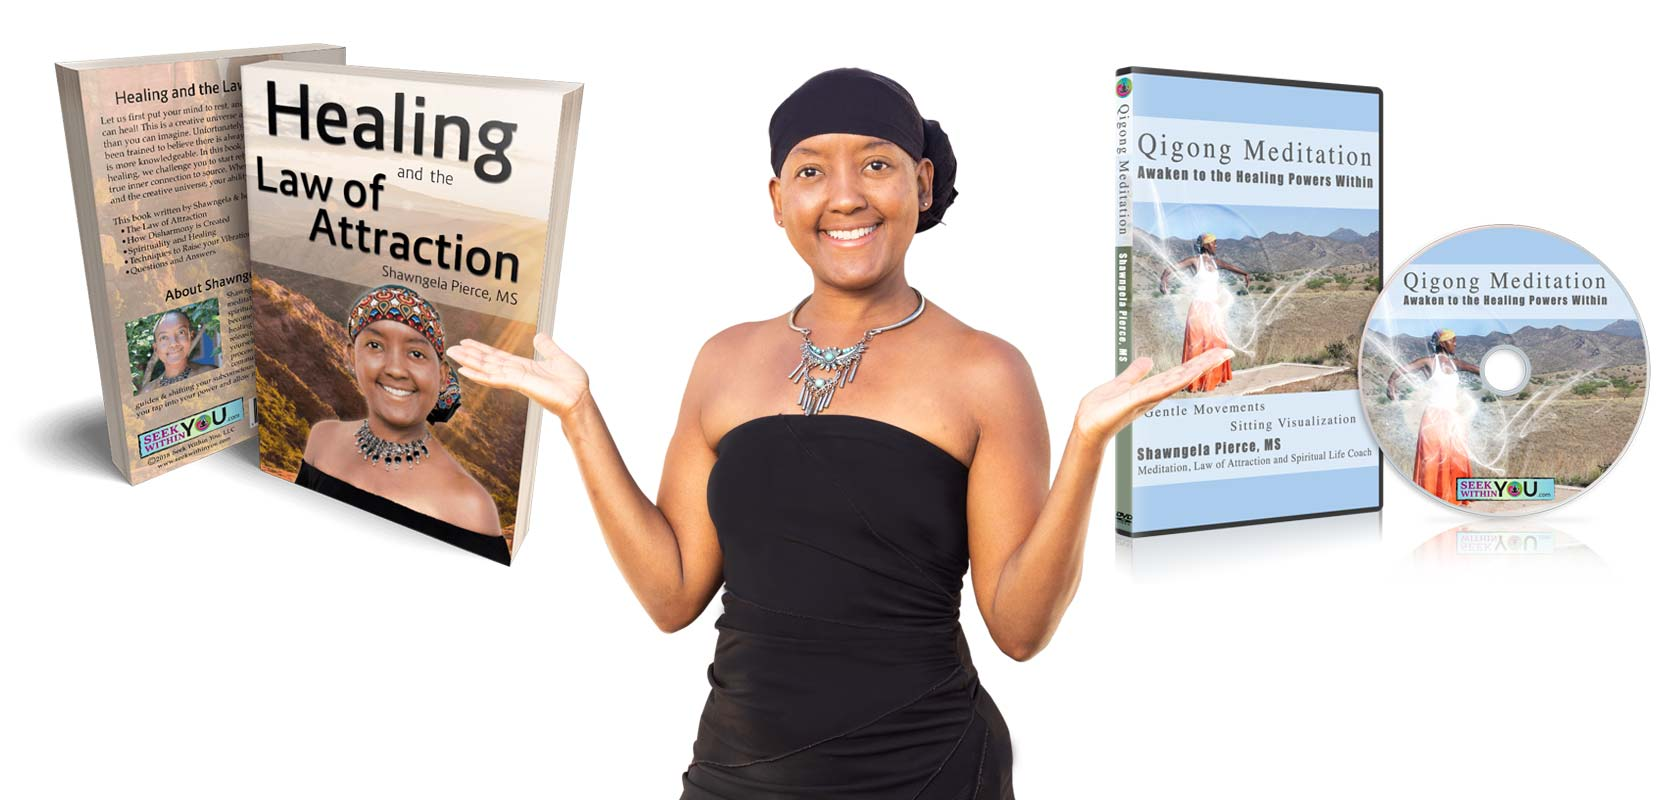 Healing and the Law of Attraction Book and Qigong DVD